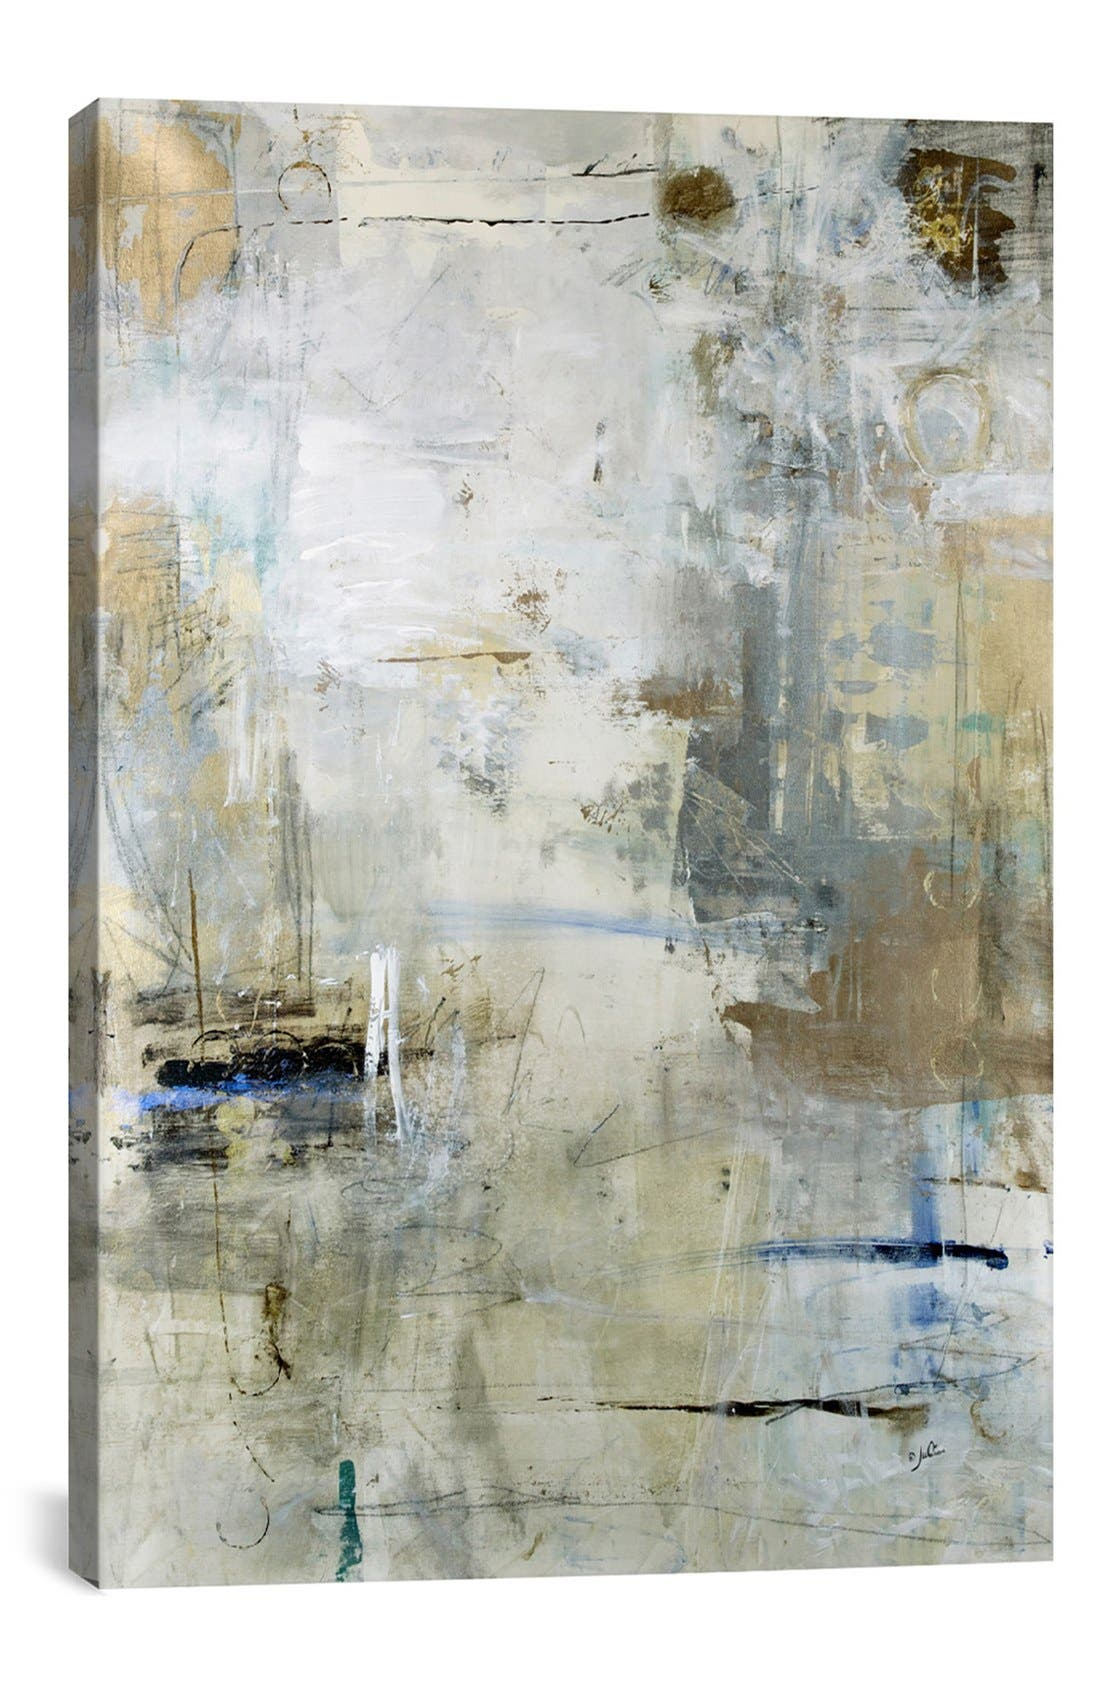 iCanvas 'Asking For White' Giclée Print Canvas Art